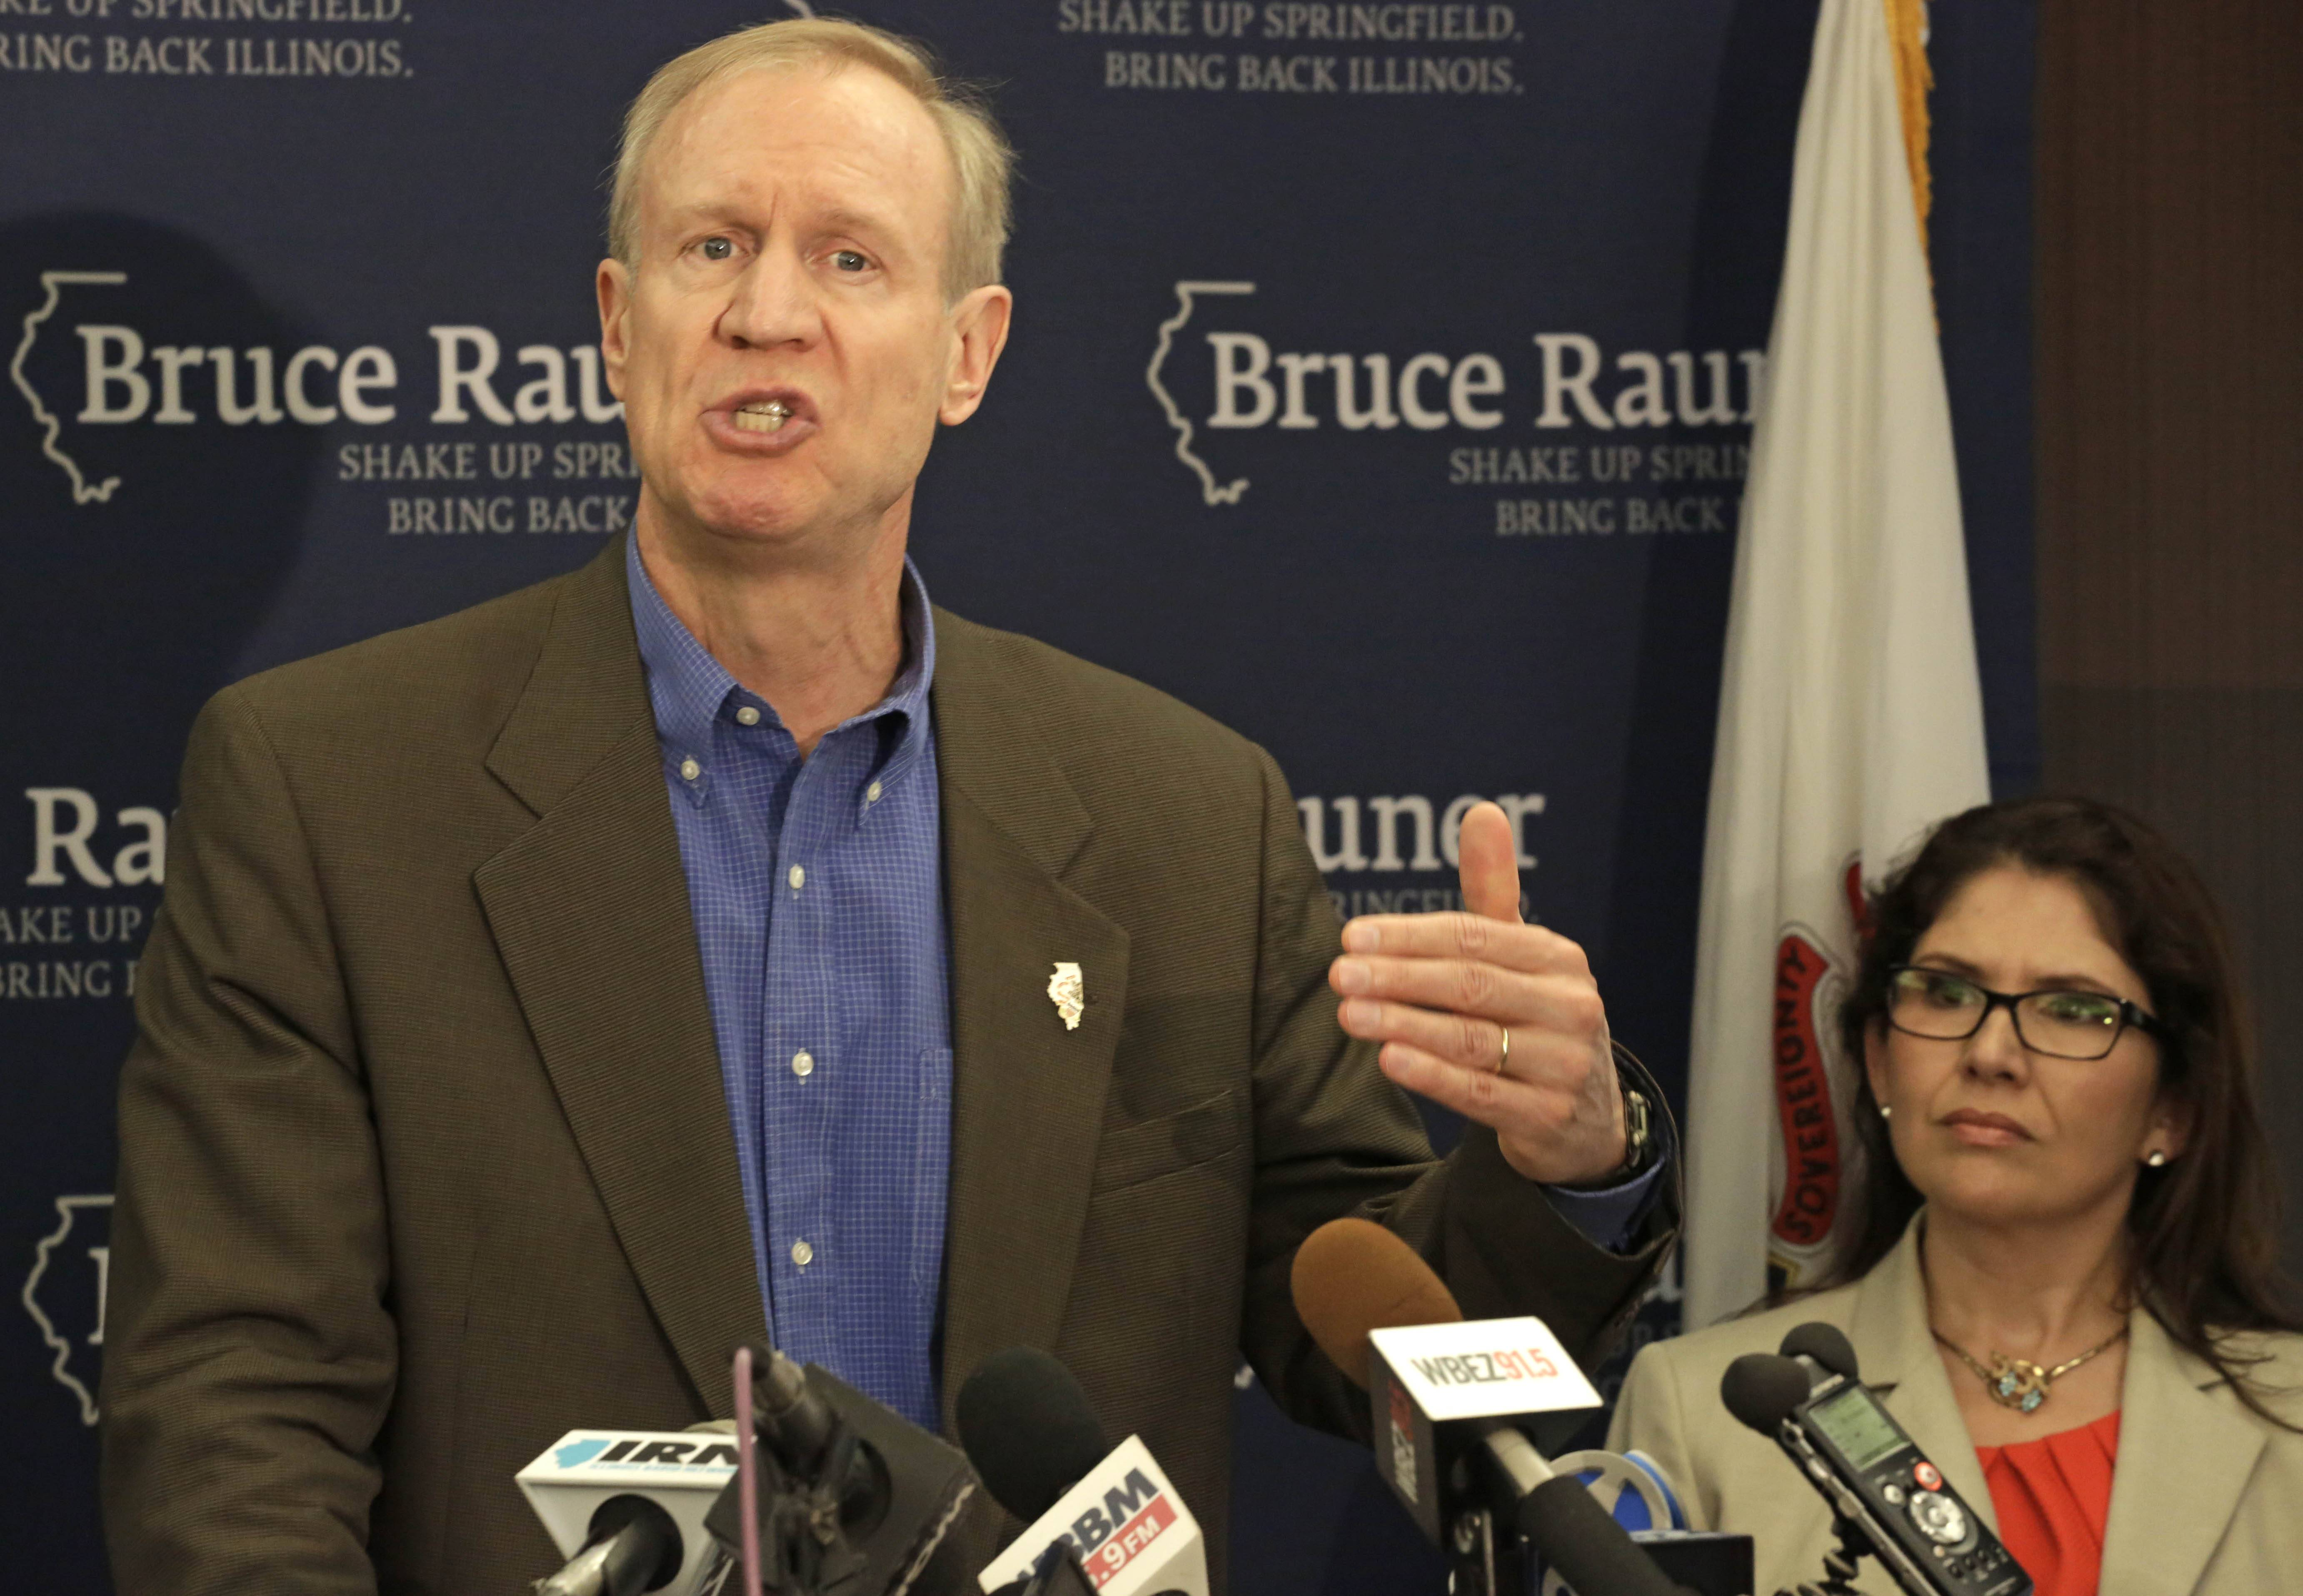 Republican governor candidate Bruce Rauner speaks at a news conference accompanied by his running mate, Evelyn Sanguinetti of Wheaton, on Thursday in Chicago. He revealed some proposals for cutting what he calls wasteful spending in Illinois.